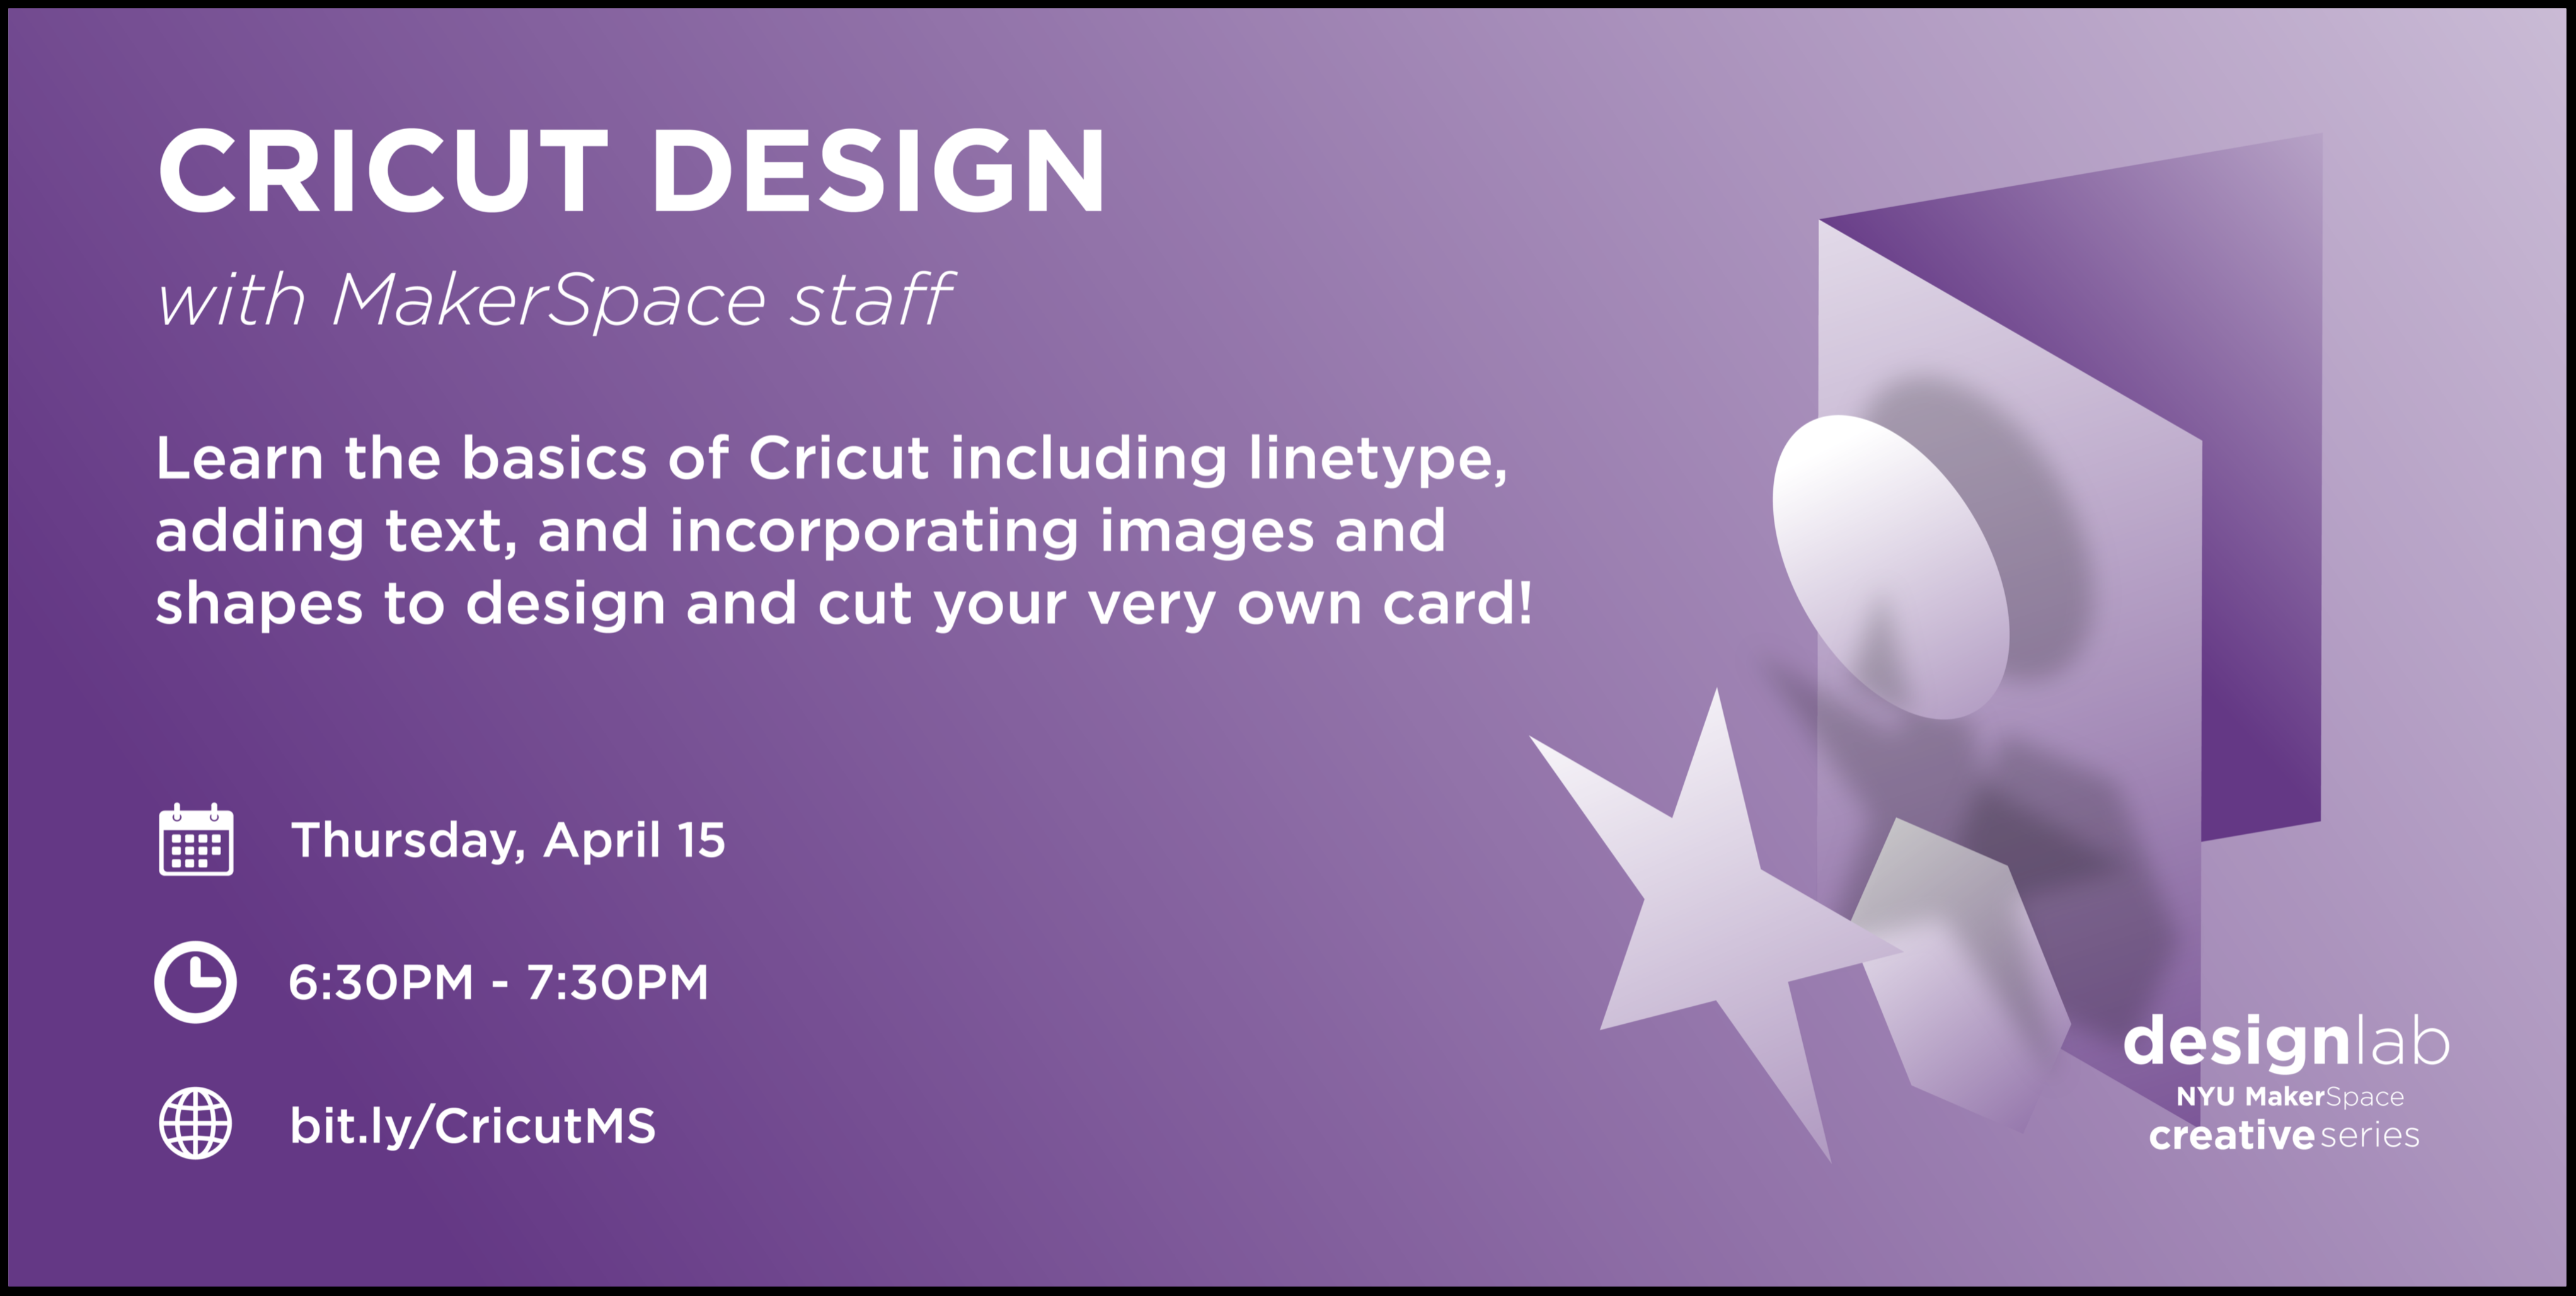 Cricut Design Flyer